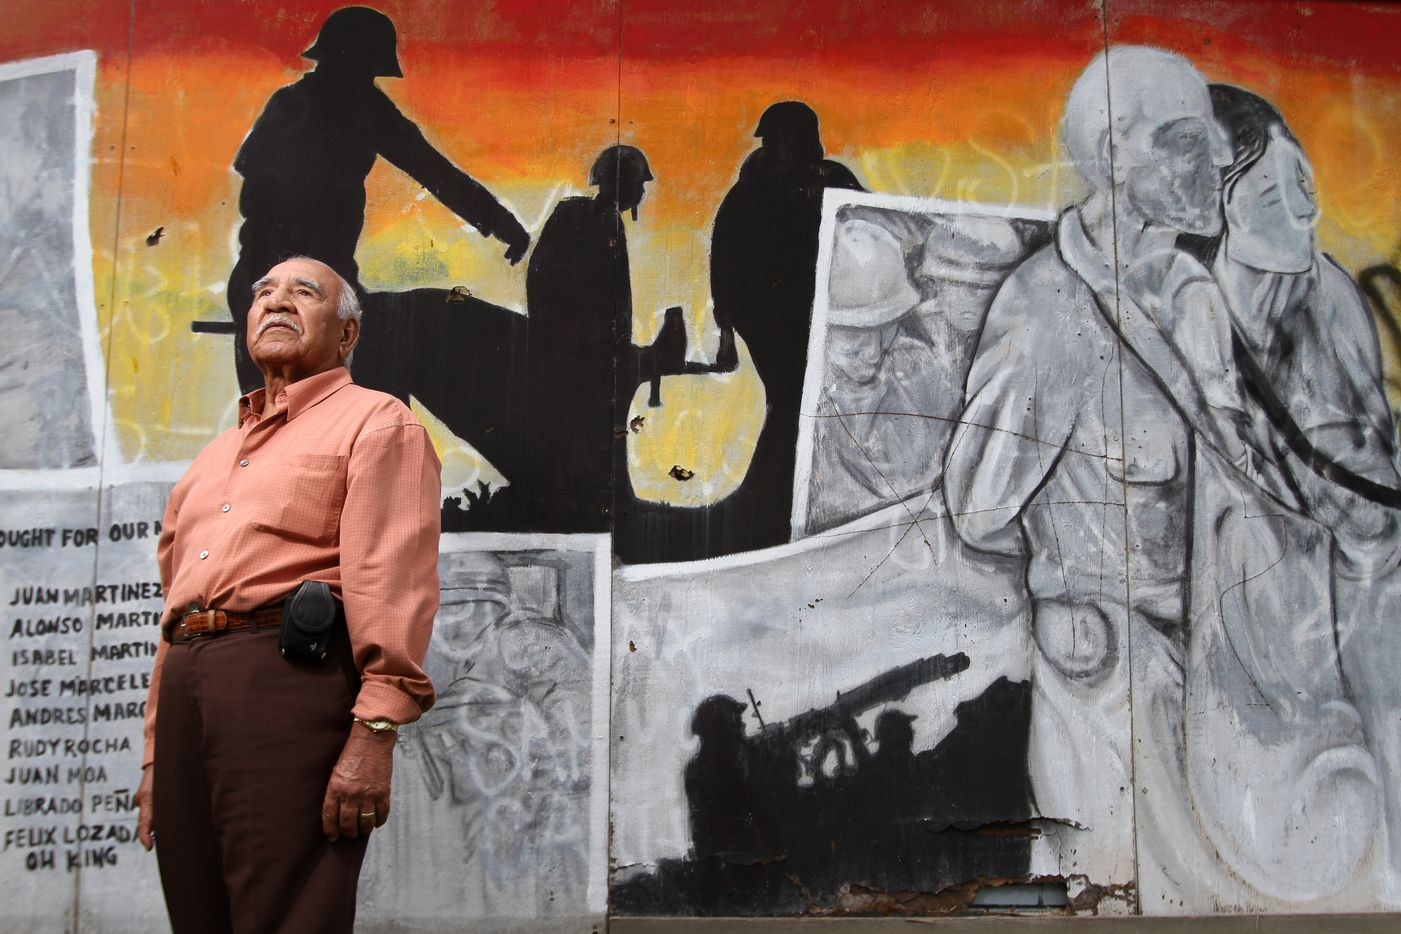 Felix Lozada, 89, a war veteran of World War II, near a mural that bears his name along with other war veterans, on Nov. 7, 2011 in West Dallas.